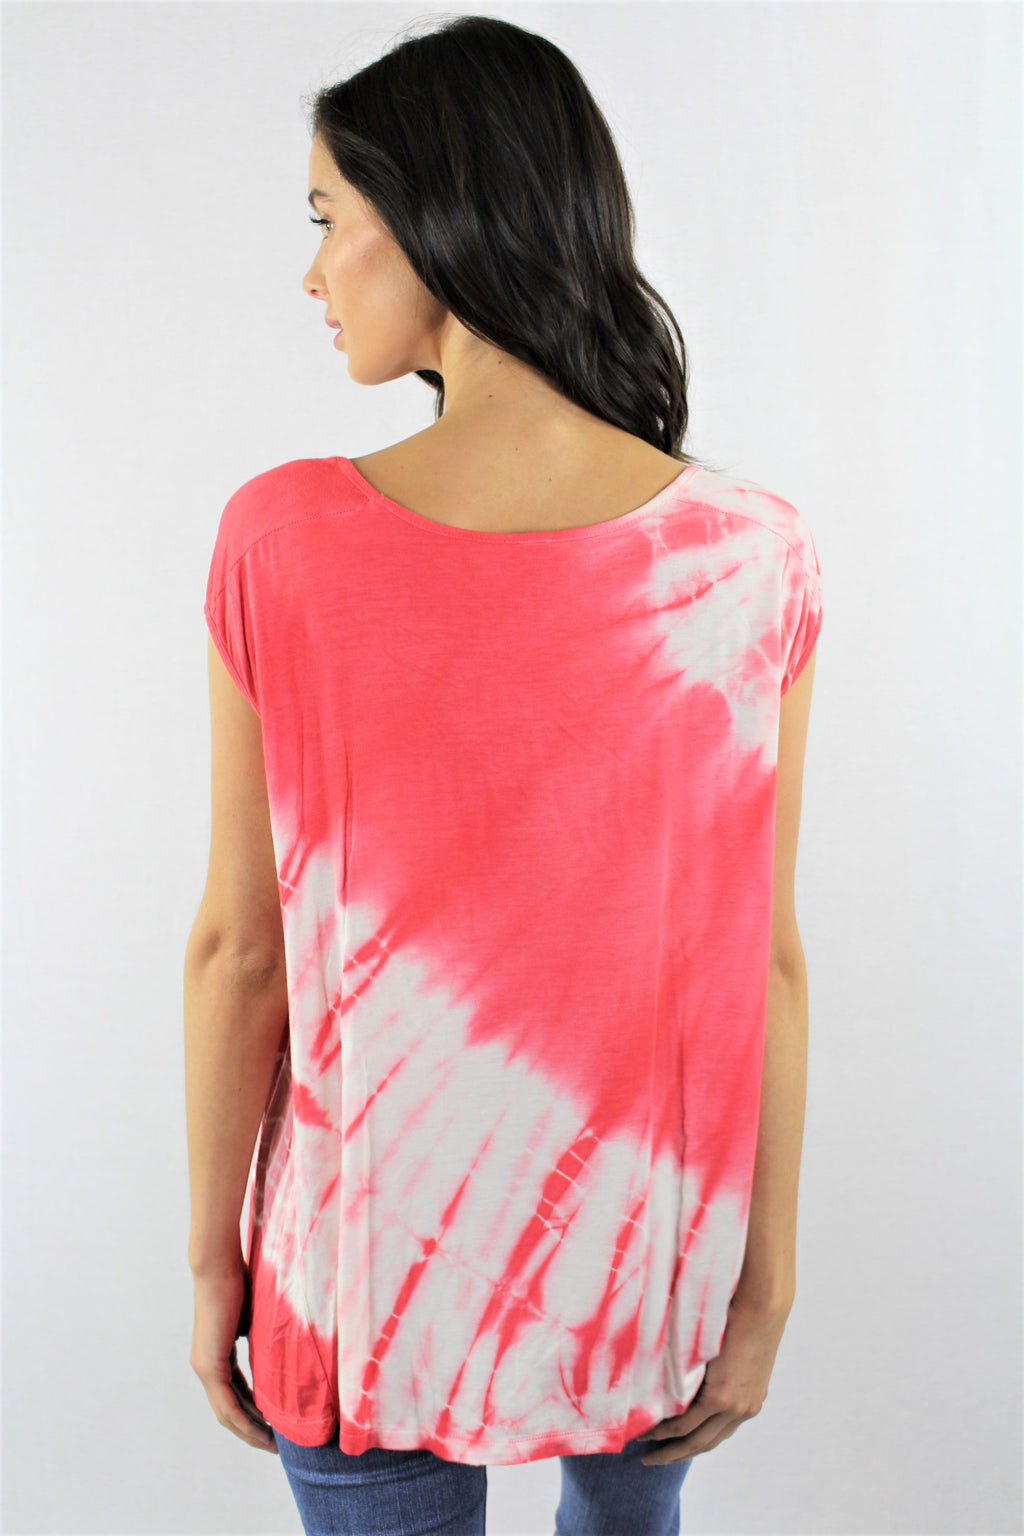 Women's Mini Sleeve Pocket Front Tie Dye Top